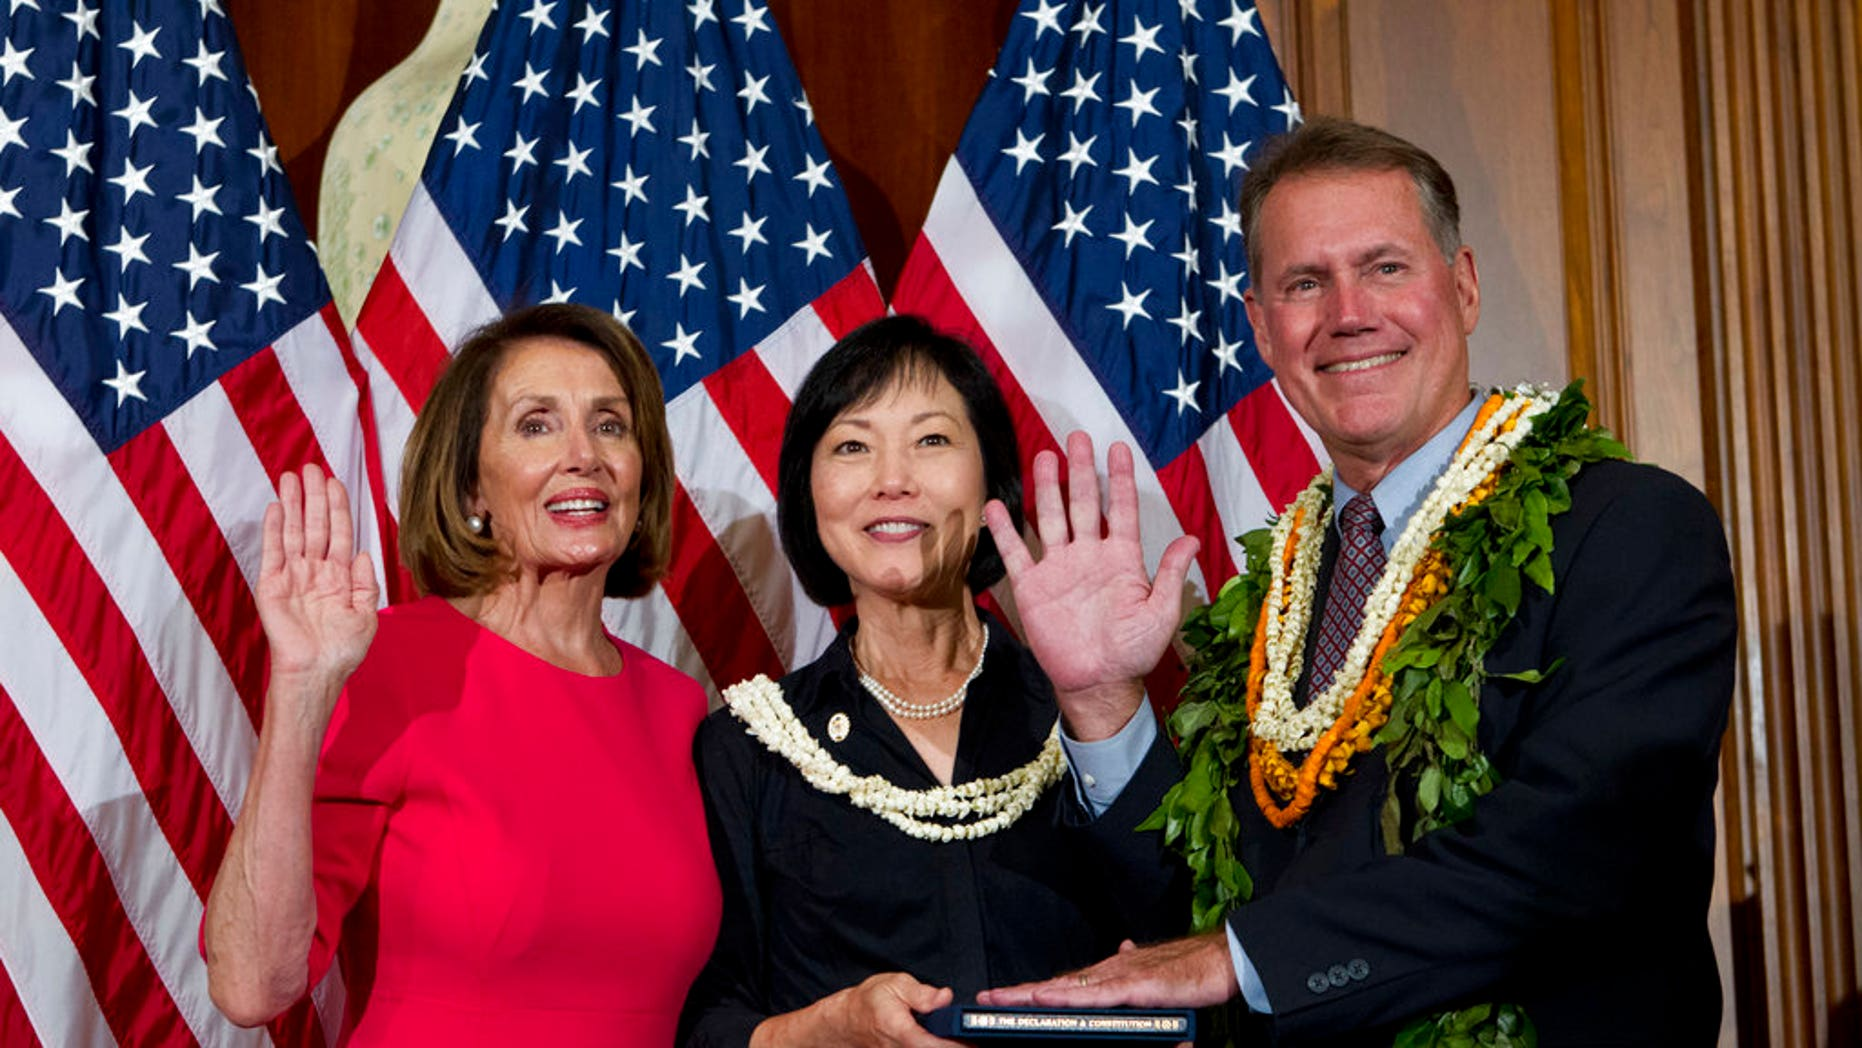 """House Speaker Nancy Pelosi of California administers the oath of office to Rep. Ed Case, D-Hawaii, during ceremonial swearing-in on Capitol Hillon Jan. 3. Case attracted criticism this week for saying he feels like an """"Asian"""" trapped in a white man's body. (AP Photo/Jose Luis Magana)"""